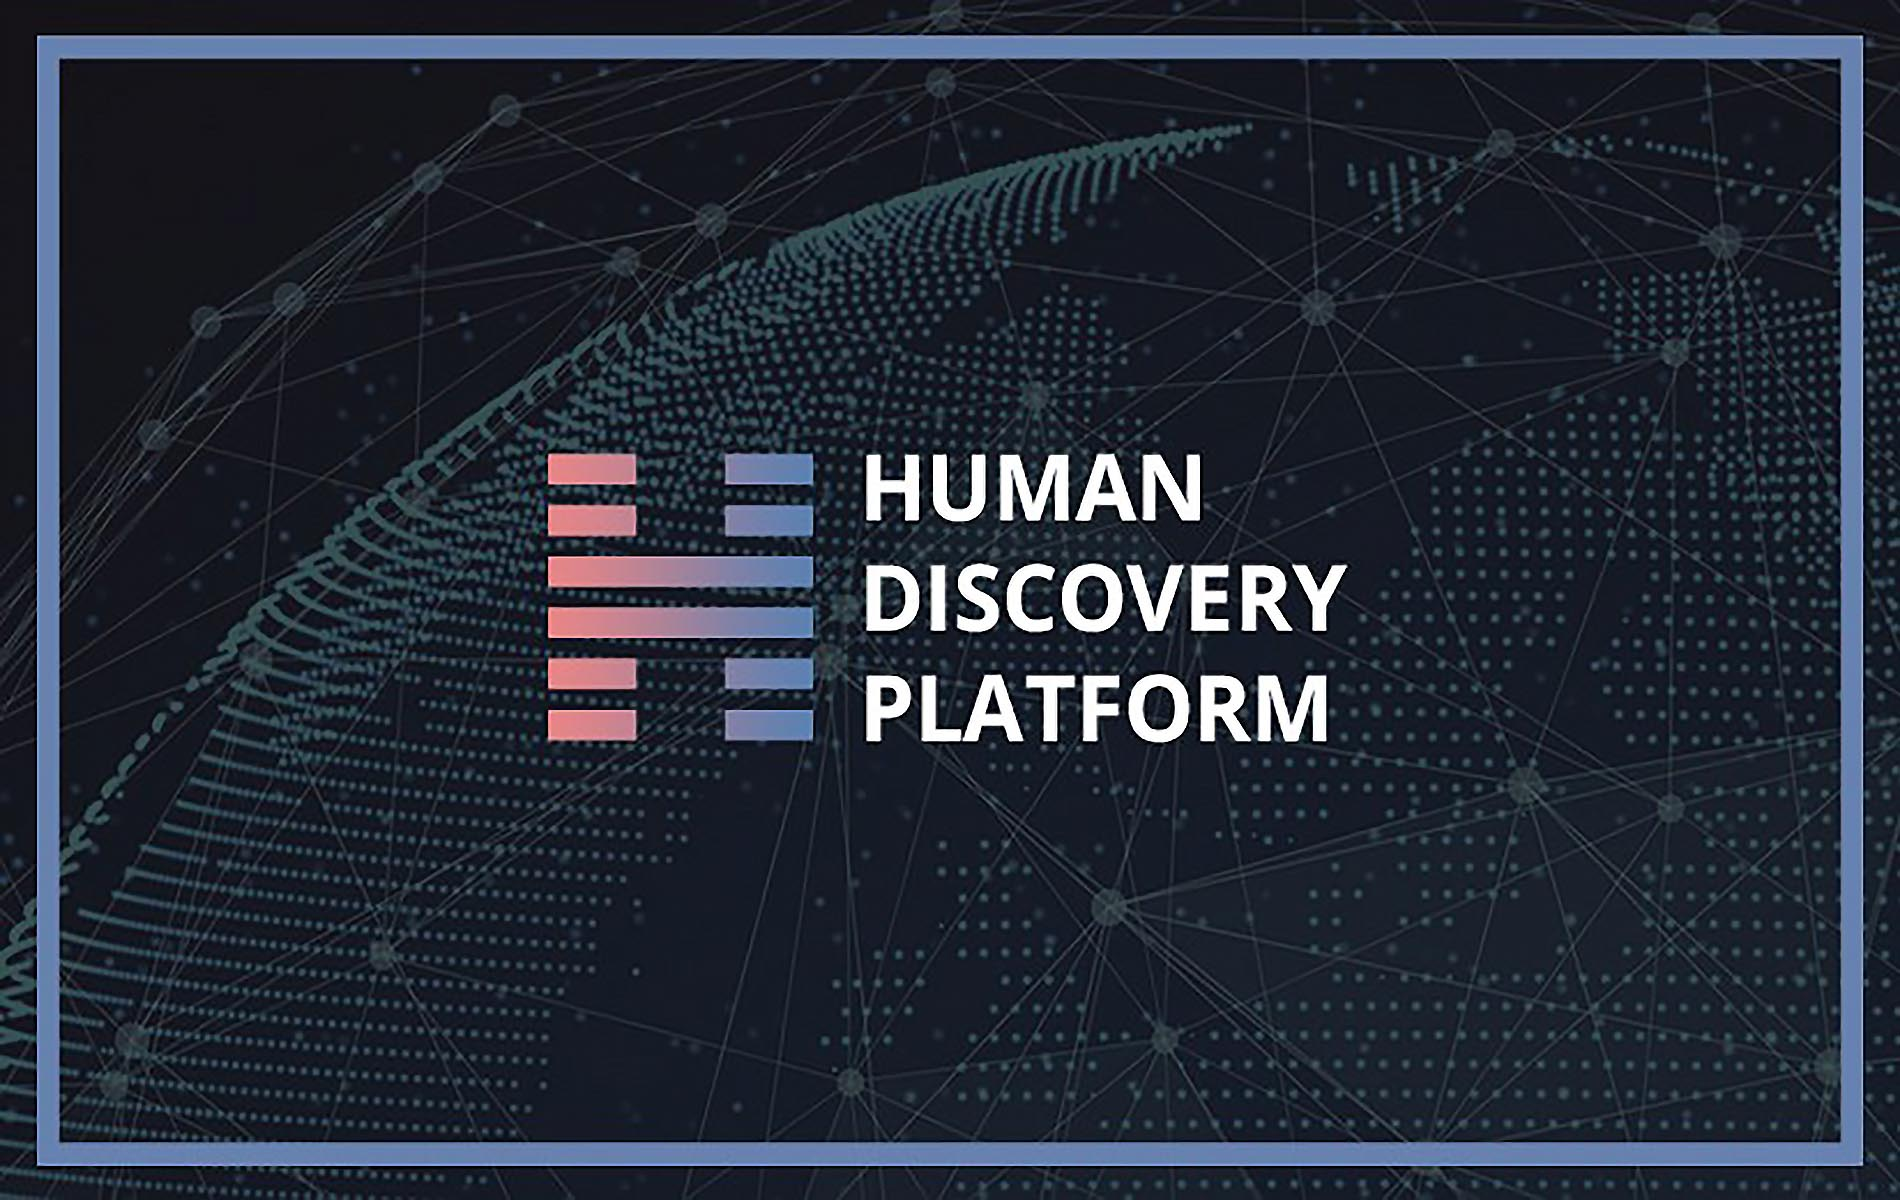 Human Discovery Platform to Hit the Self-Improvement and HR Markets